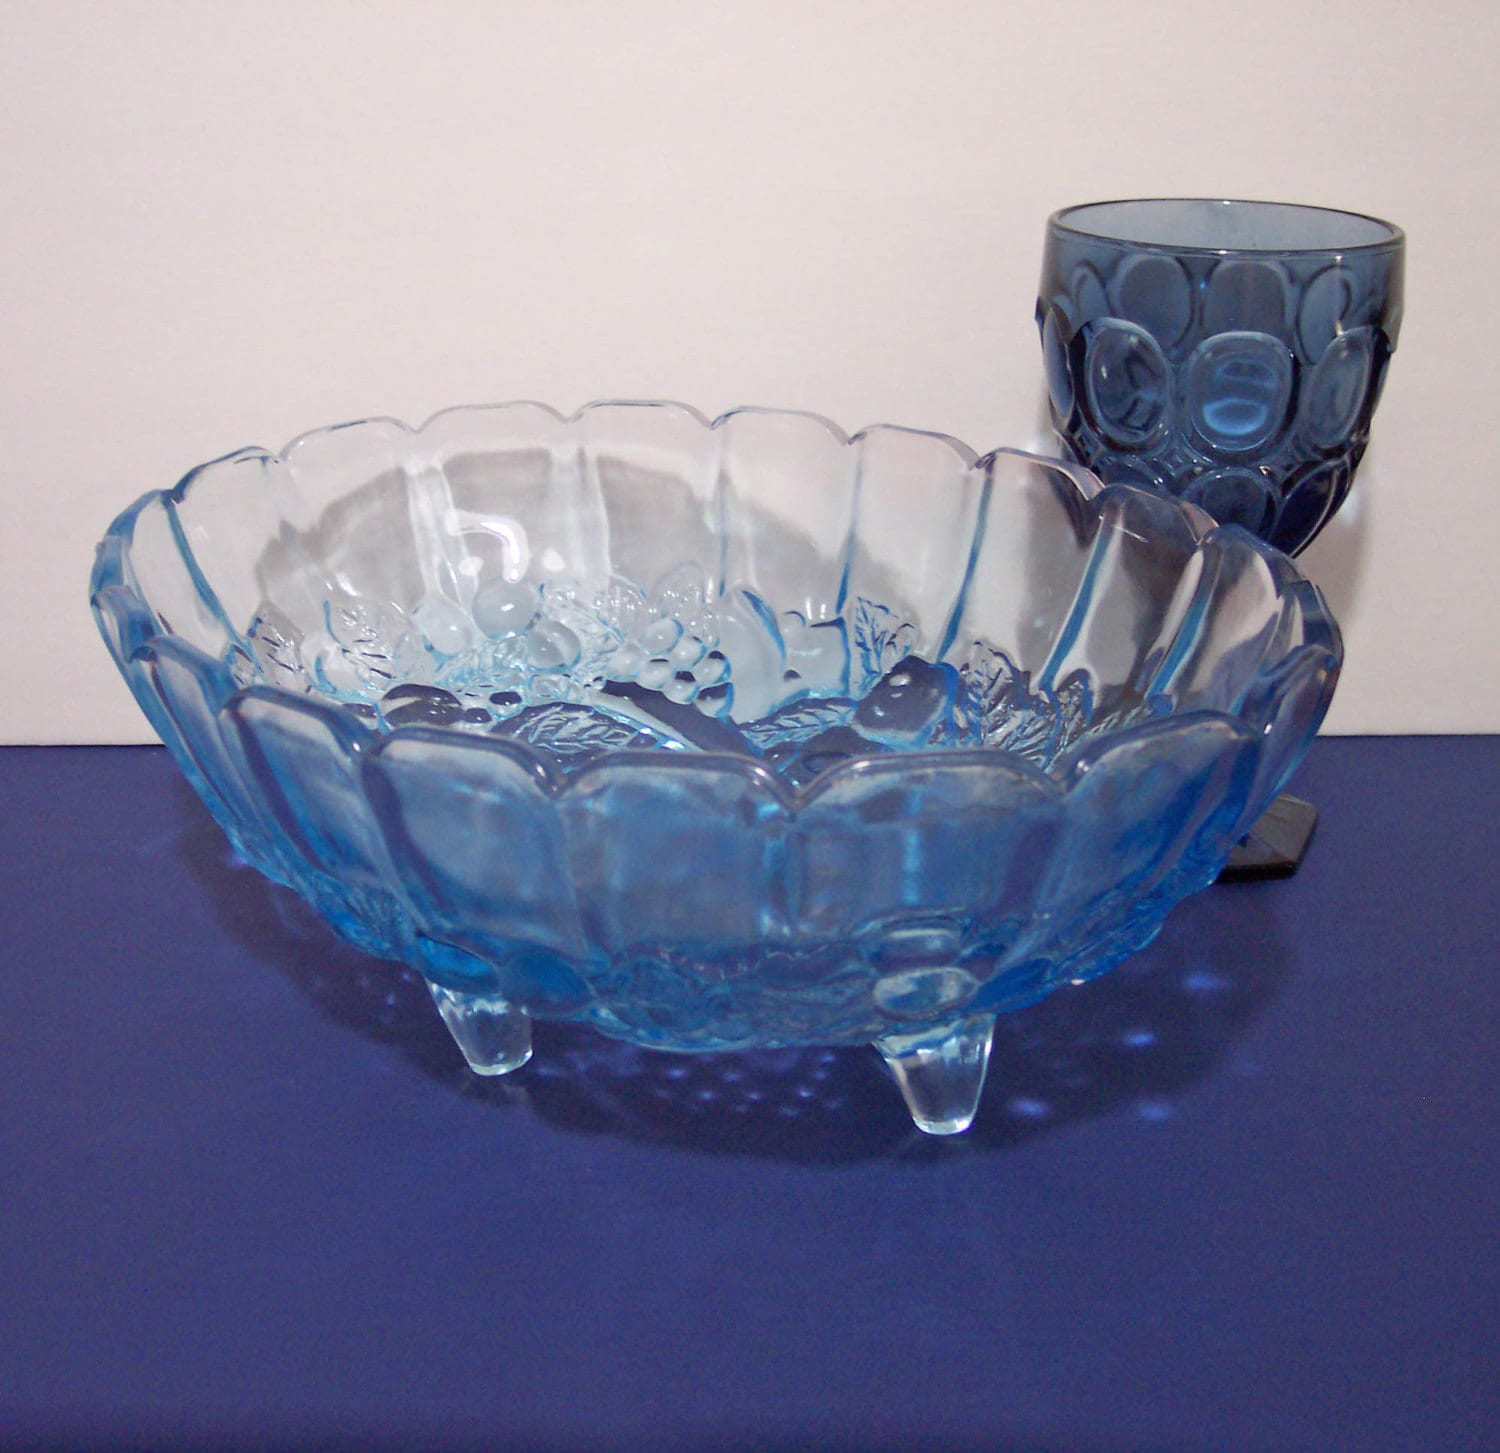 Blue oval centerpiece bowl for flowers fruit candles